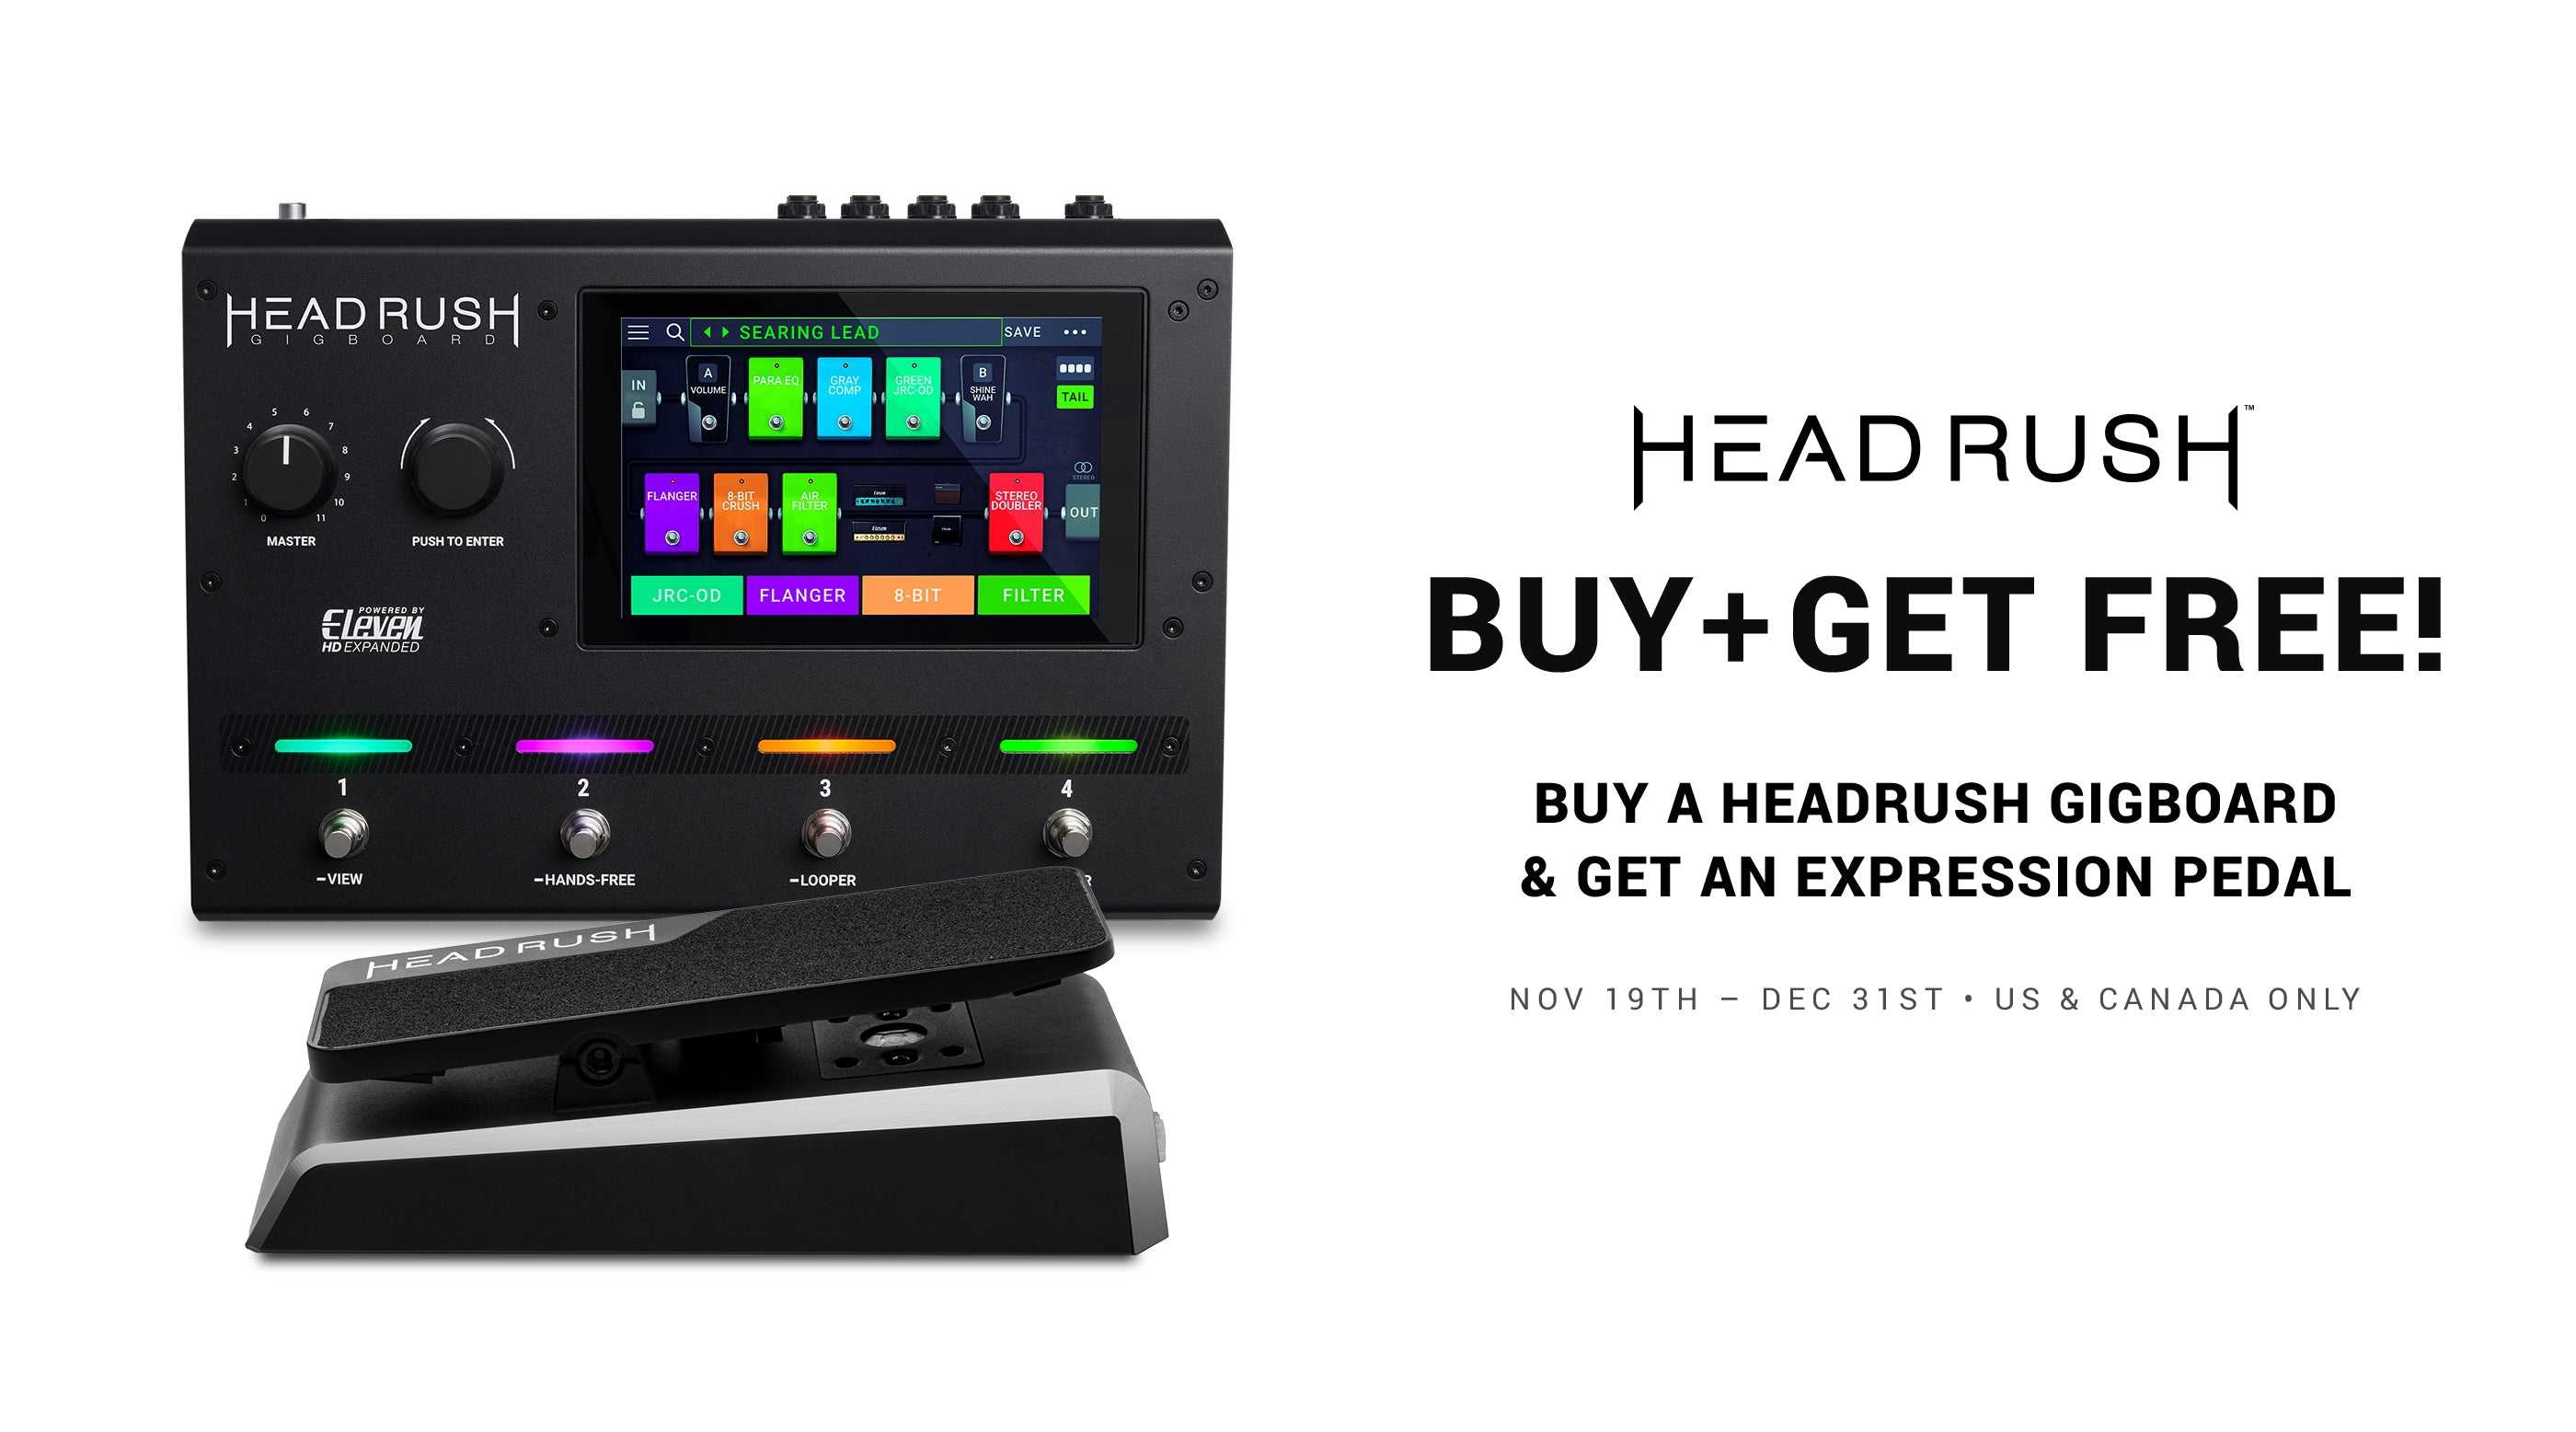 Headrush Holiday special: Buy a Gigboard and get an Expression Pedal free!